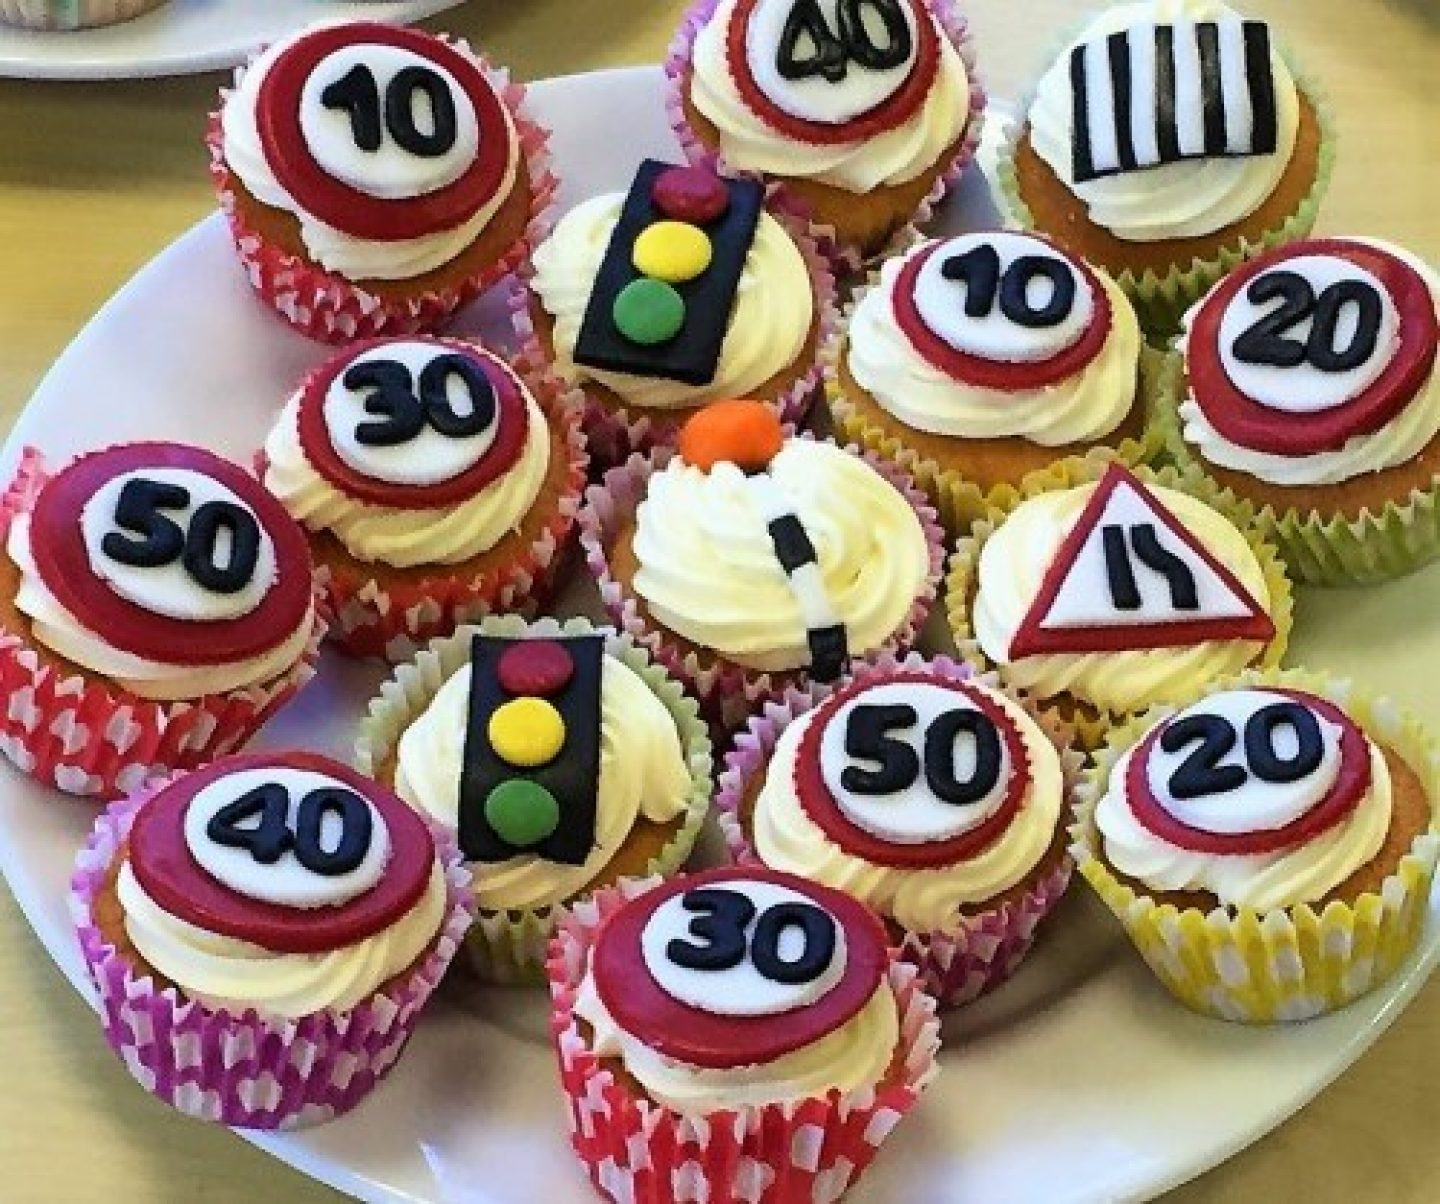 Road safety cupcakes